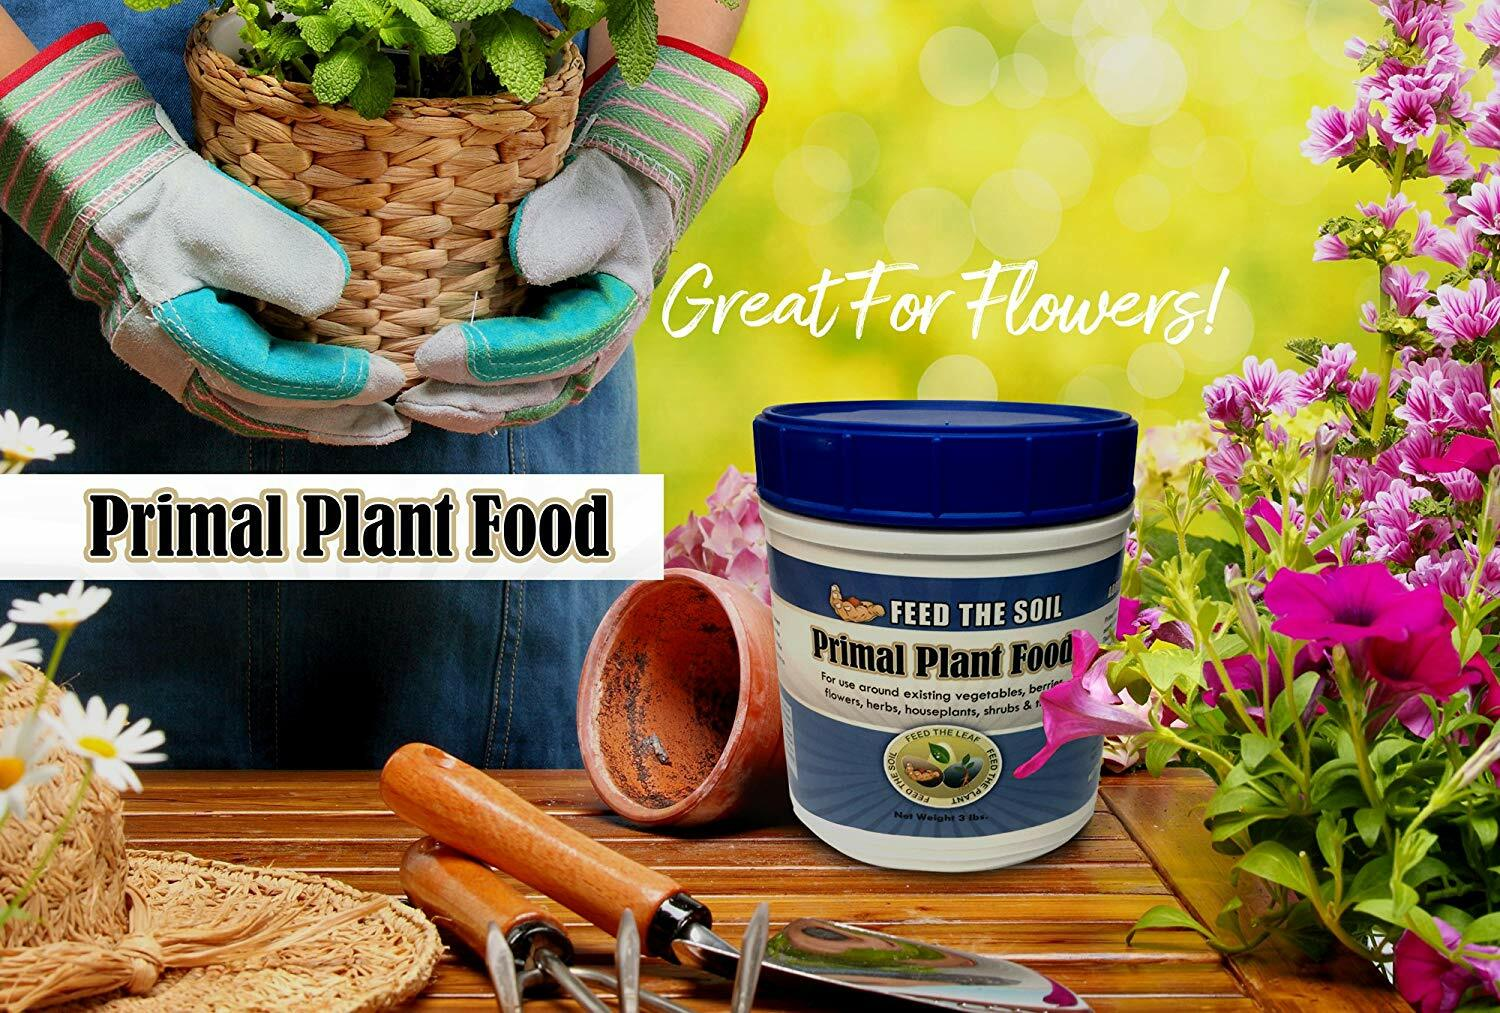 Primal Plant Food - Rock-Powder Based Organic Ingredients, 3 lbs.